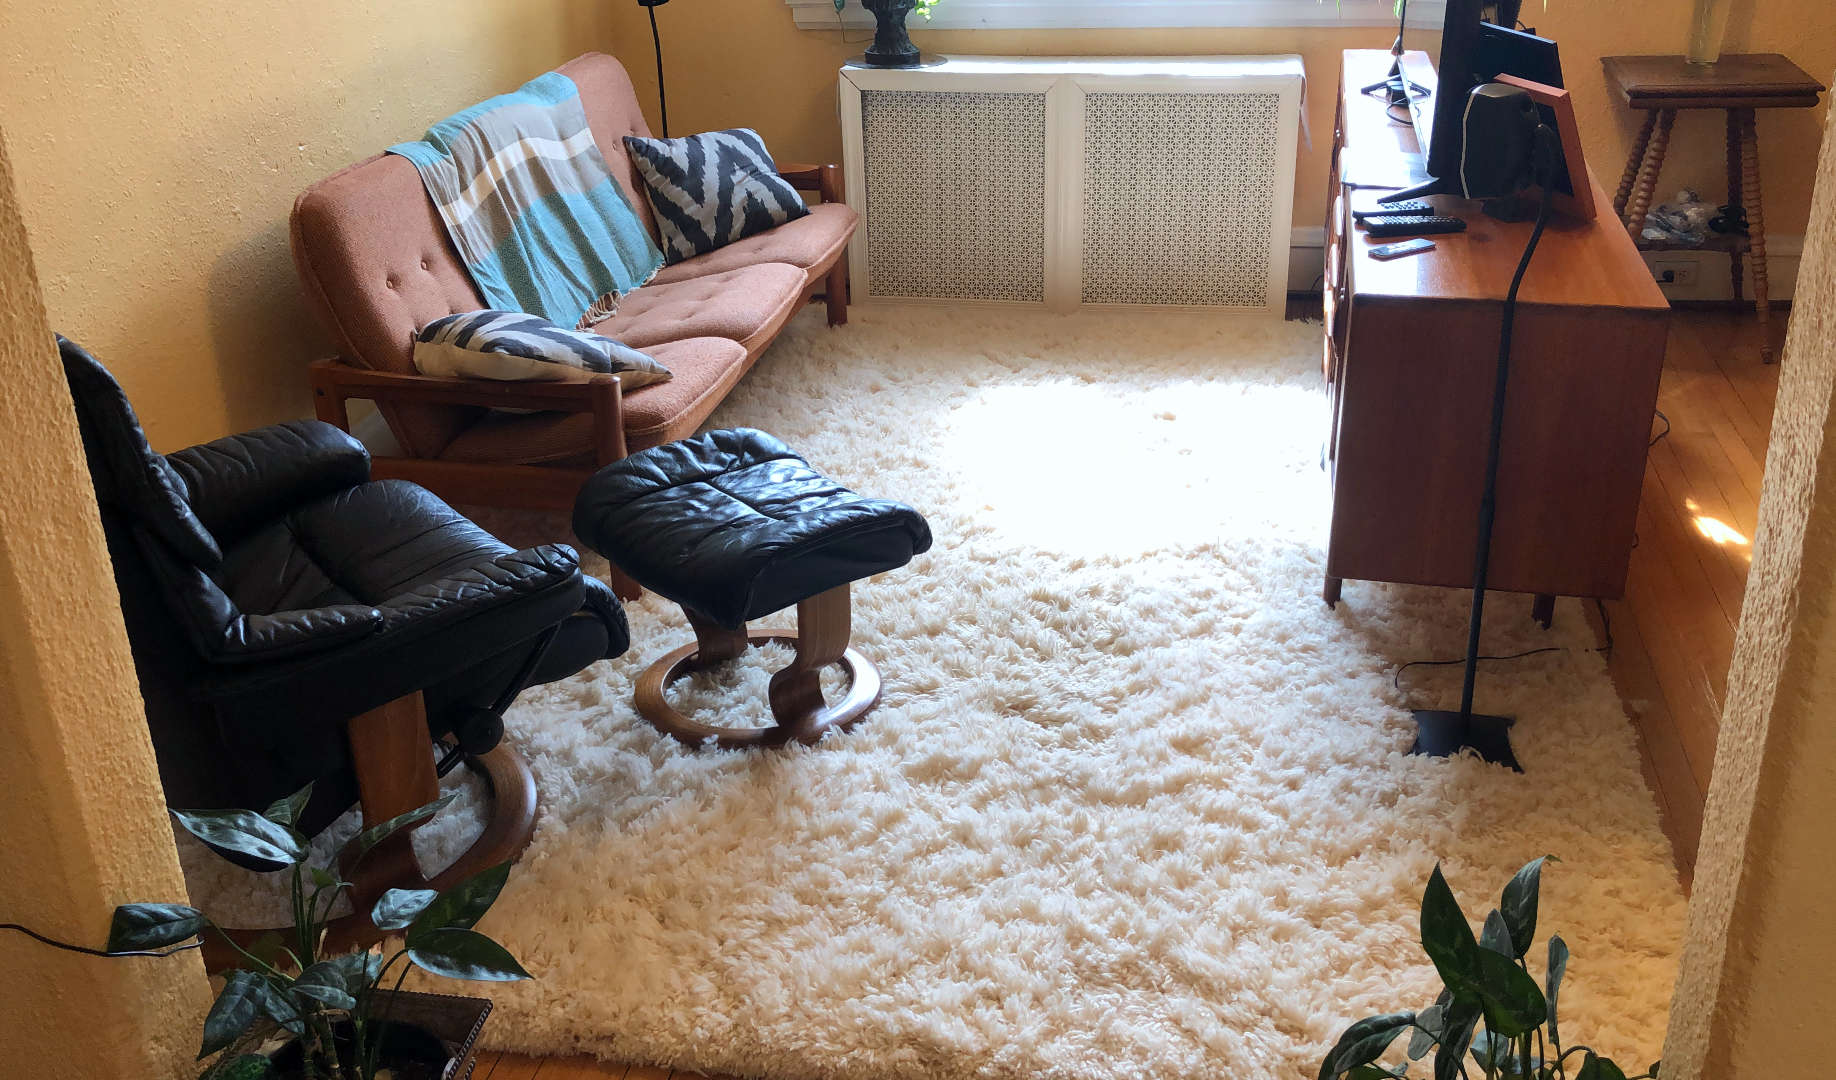 Our new cozy shag rug really brings the living room together!